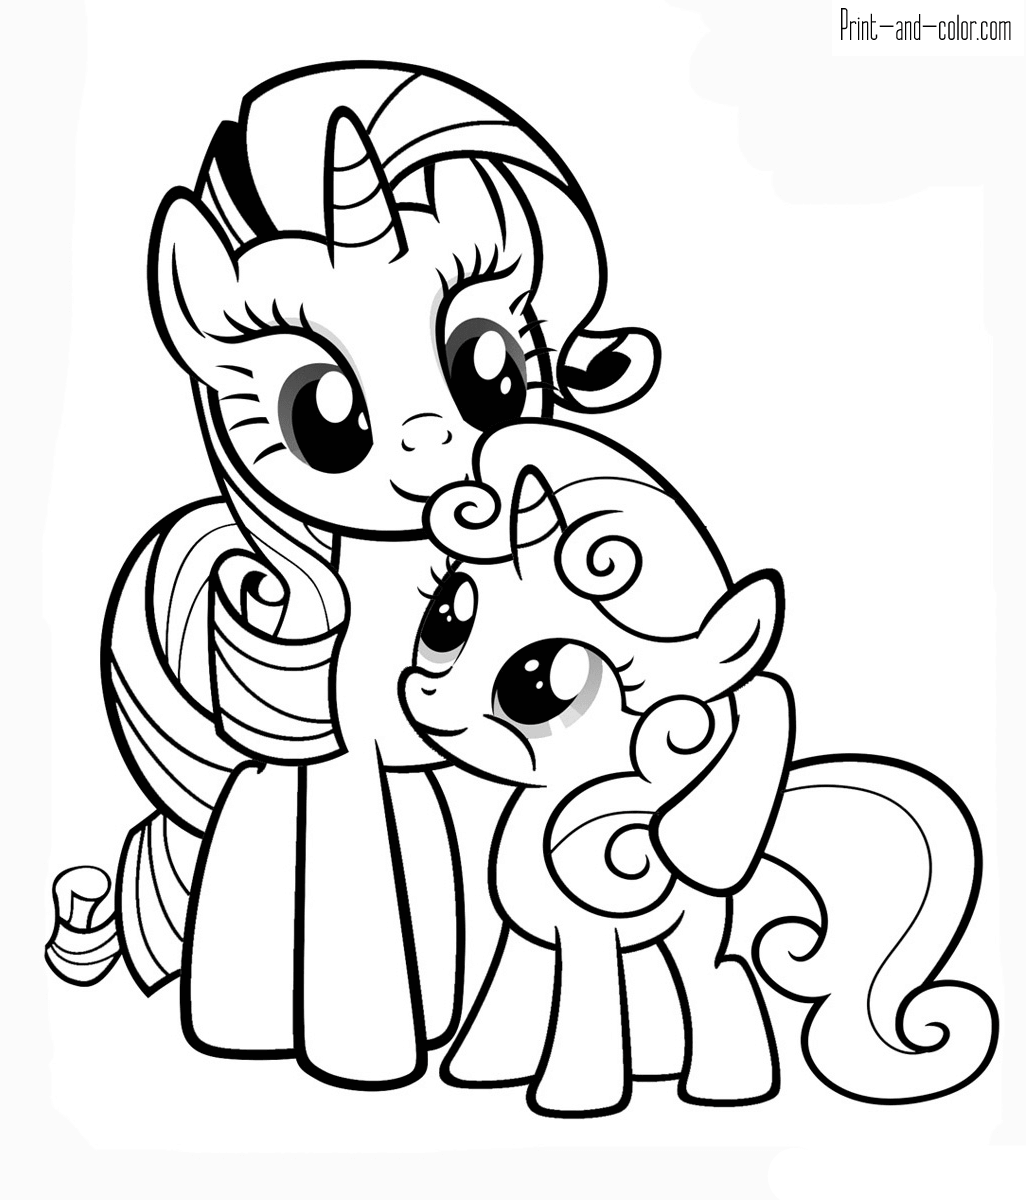 colouring pages little pony pony cartoon my little pony coloring page 003 unicorn little pages colouring pony